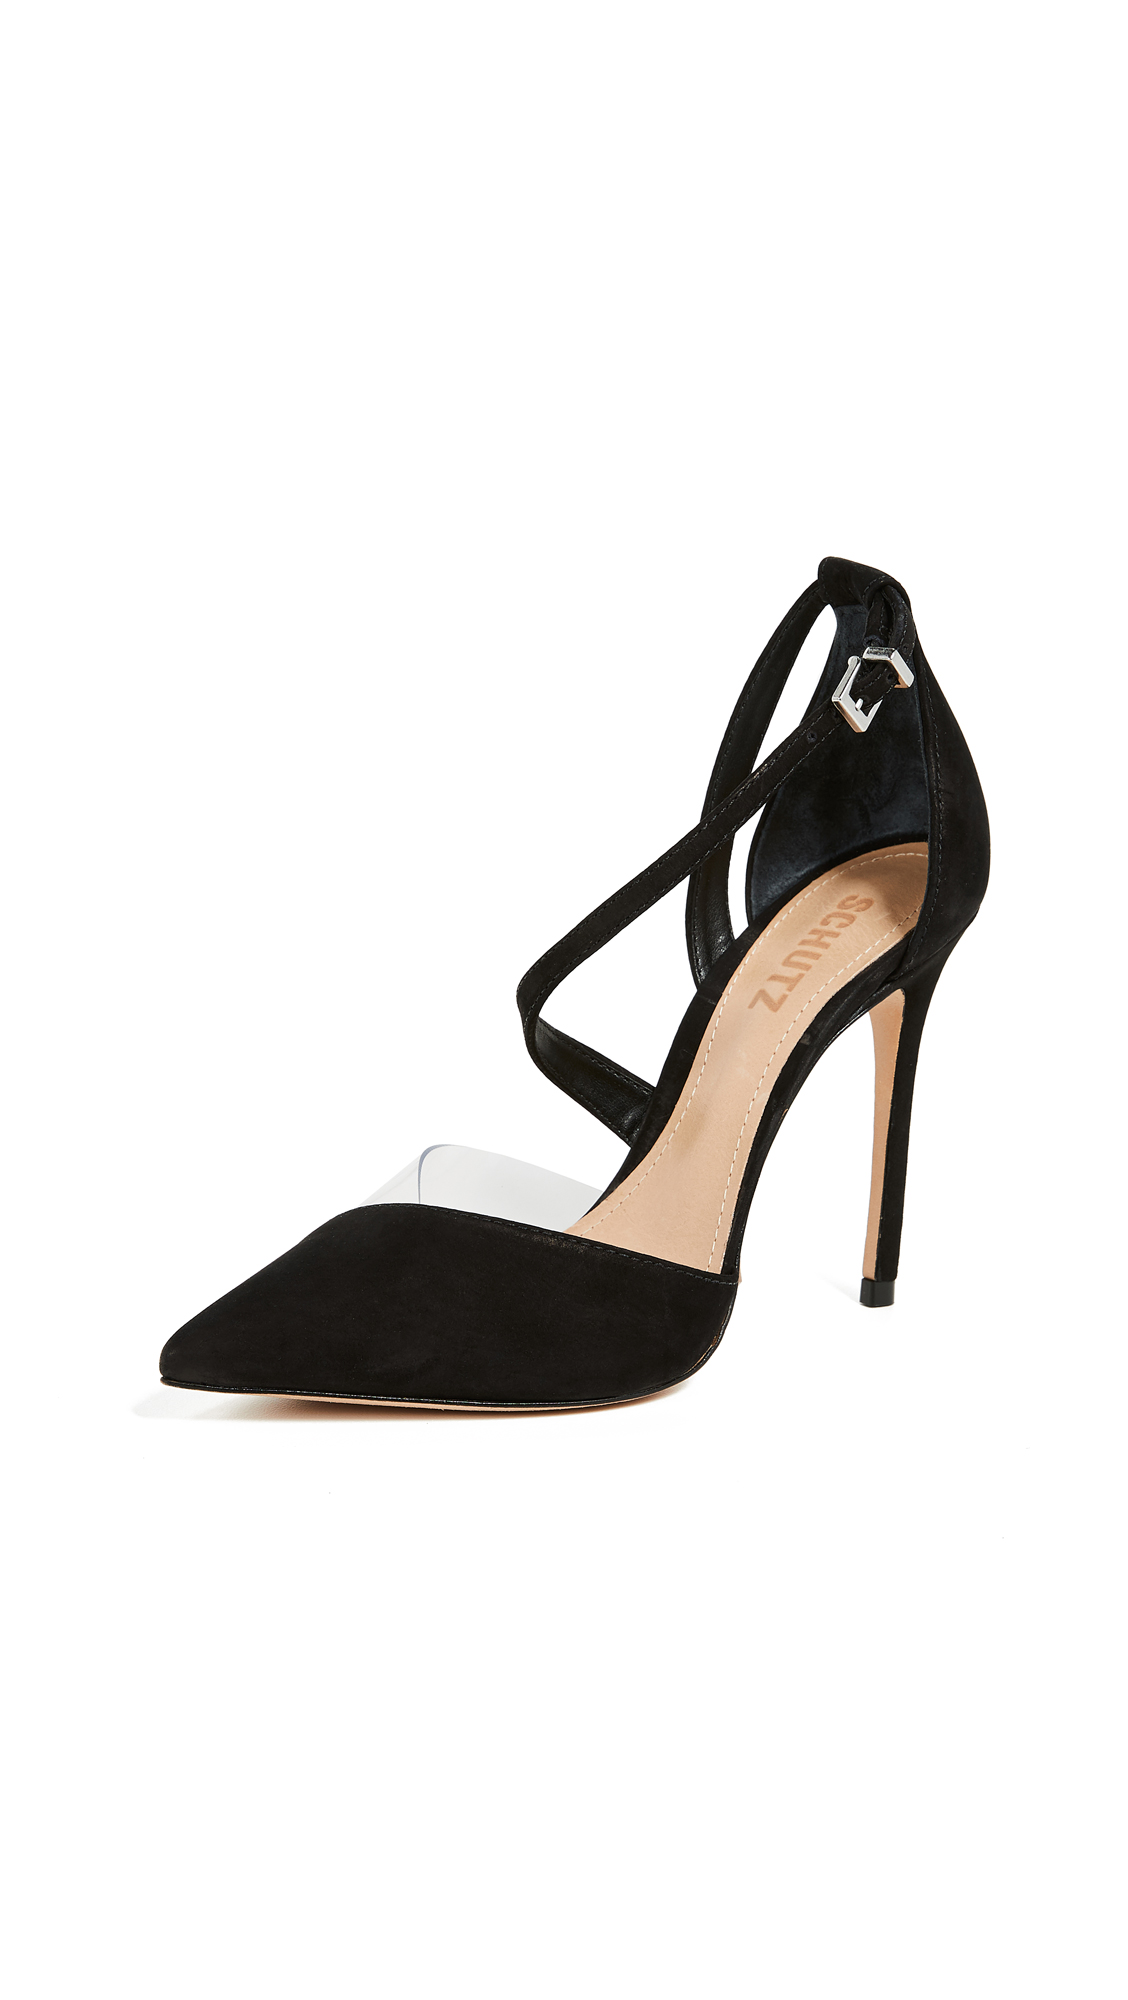 Schutz Nissy dOrsay Pumps - Black/Transparent